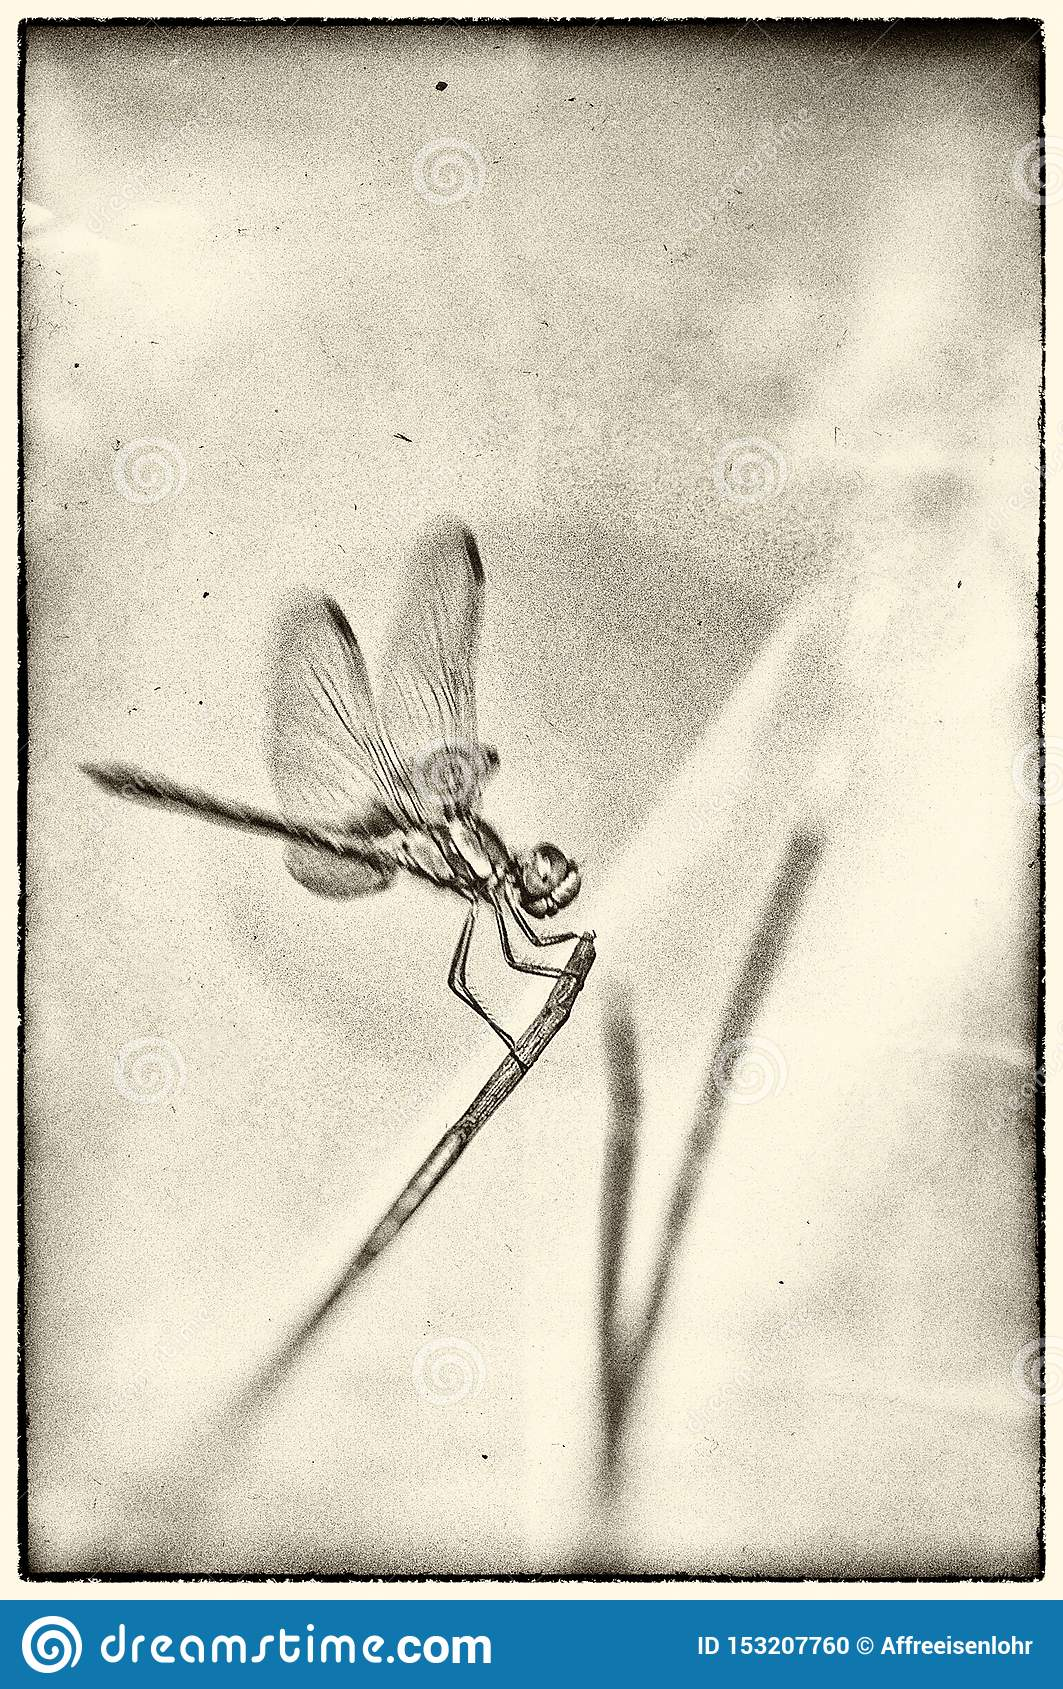 Dragonfly posed for a broom stalk on textured background